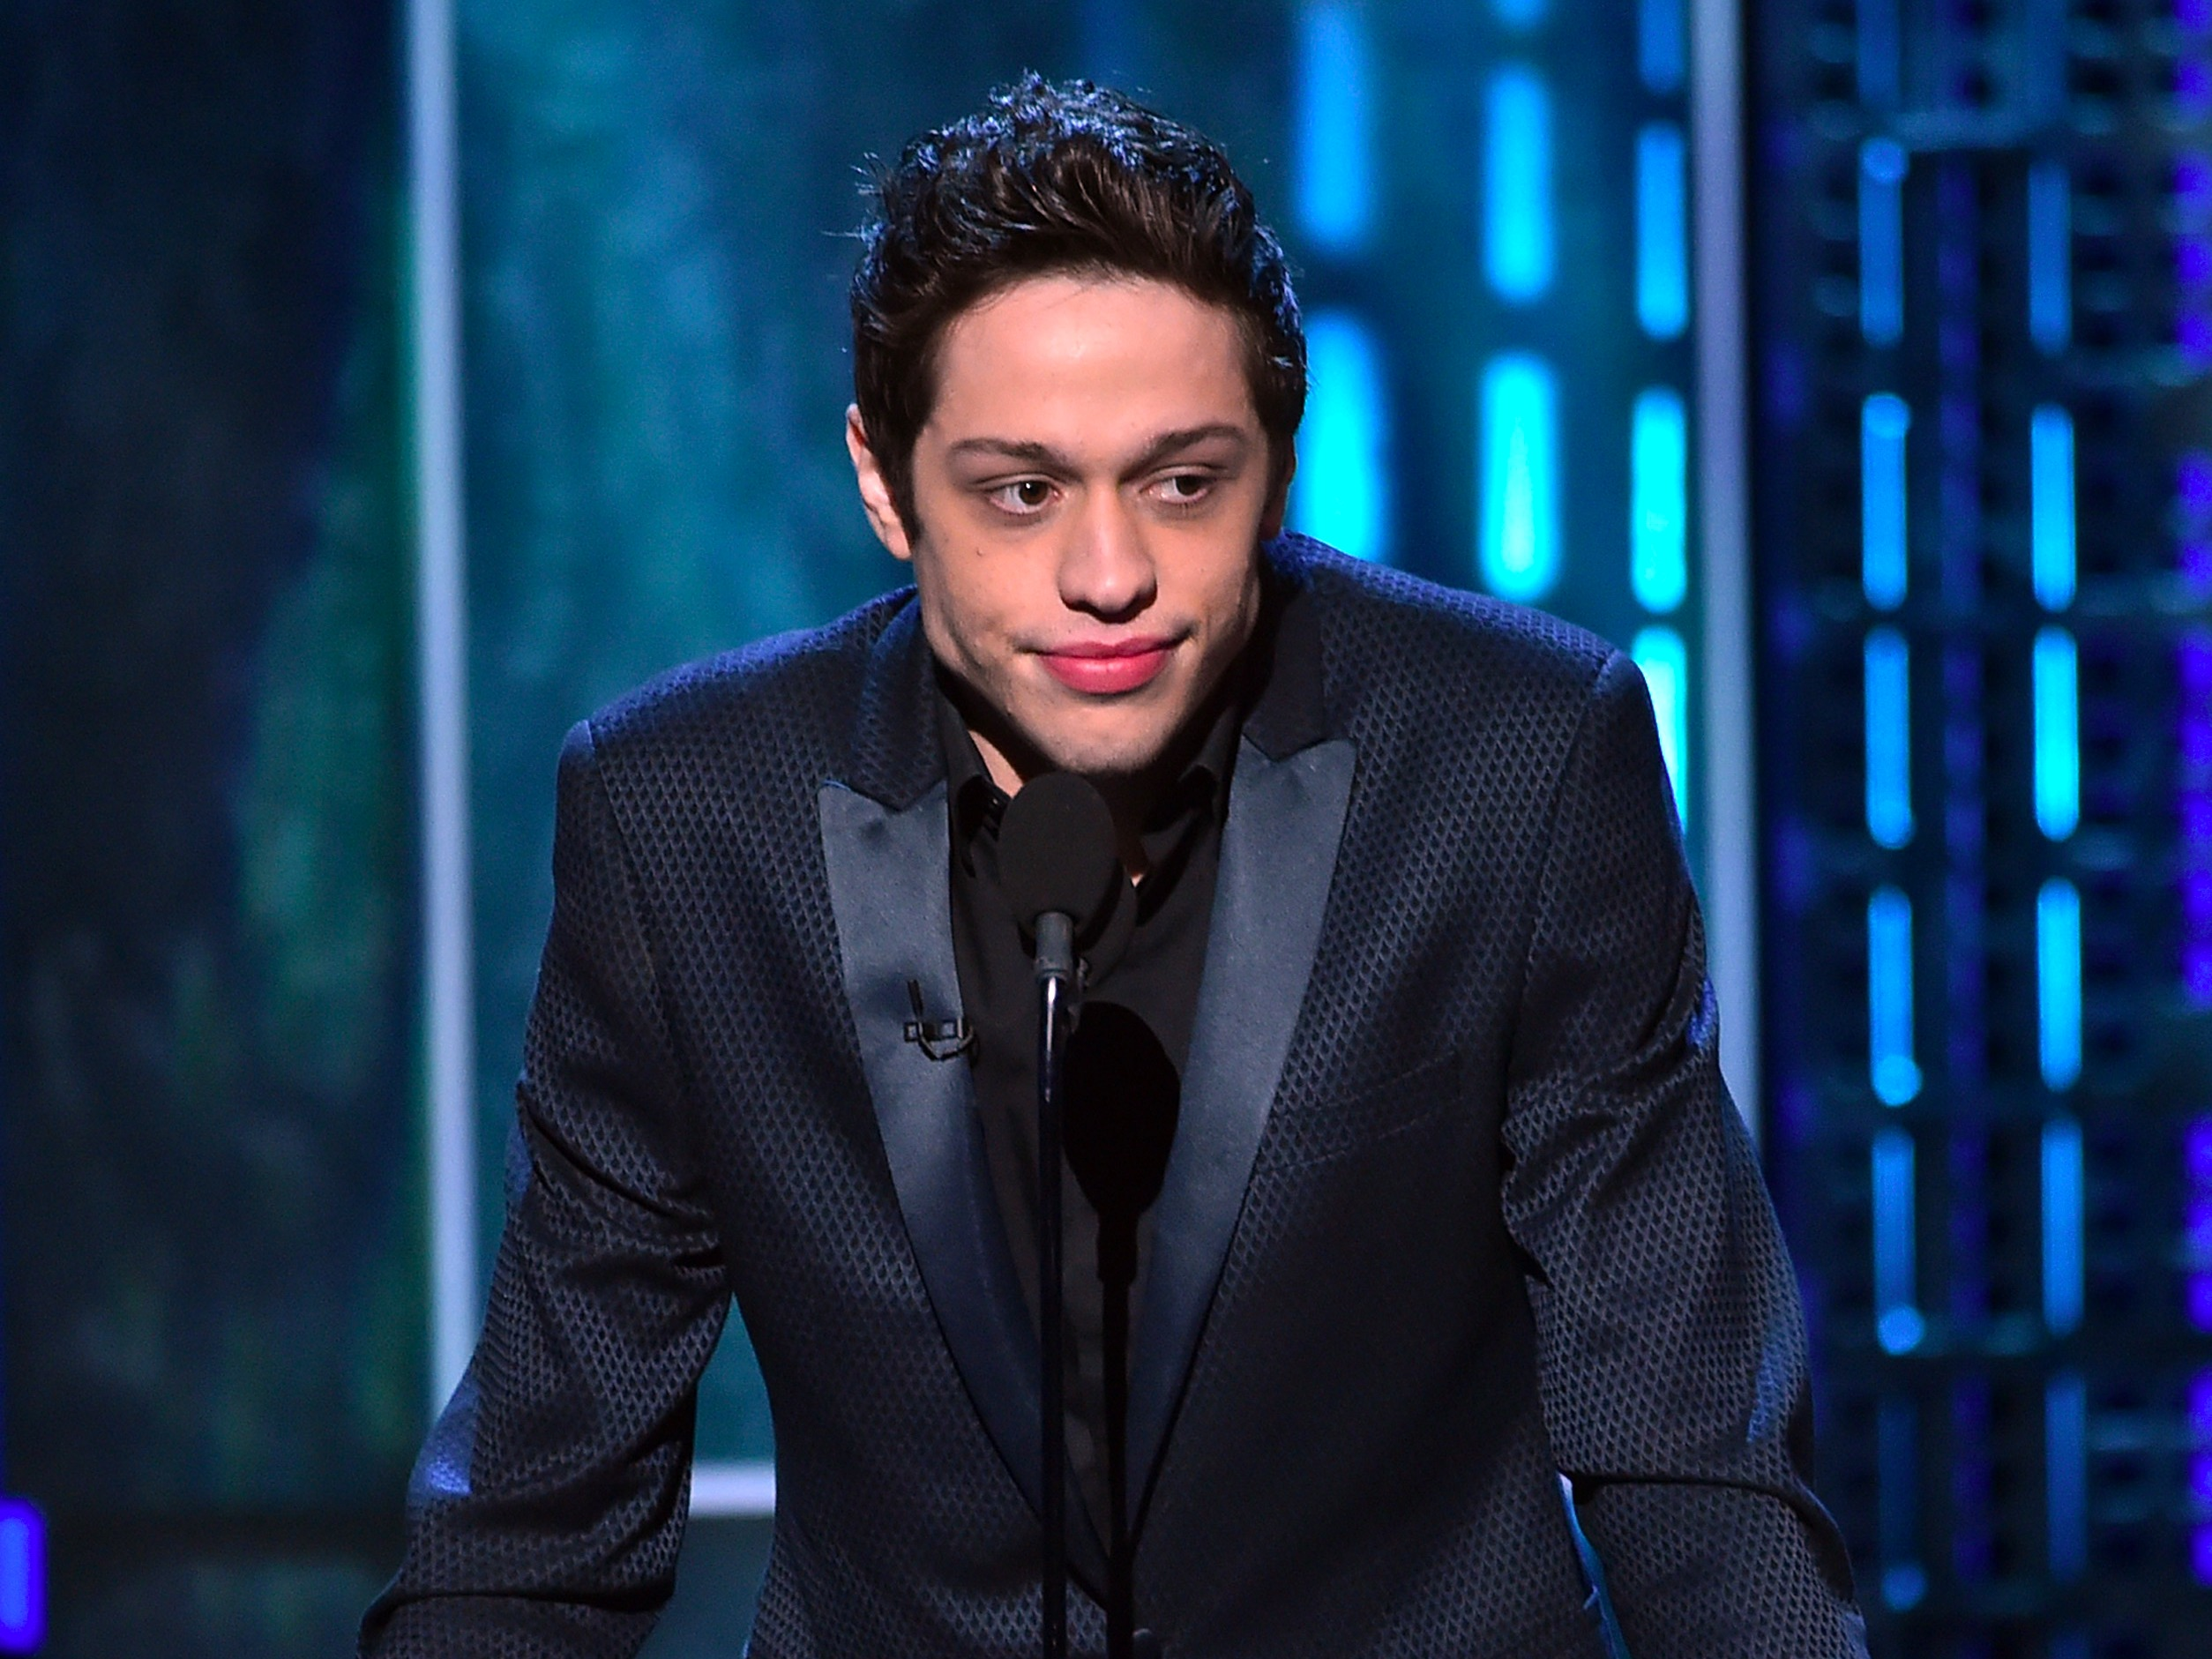 Pete Davidson Ethnicity, Race, and Nationality